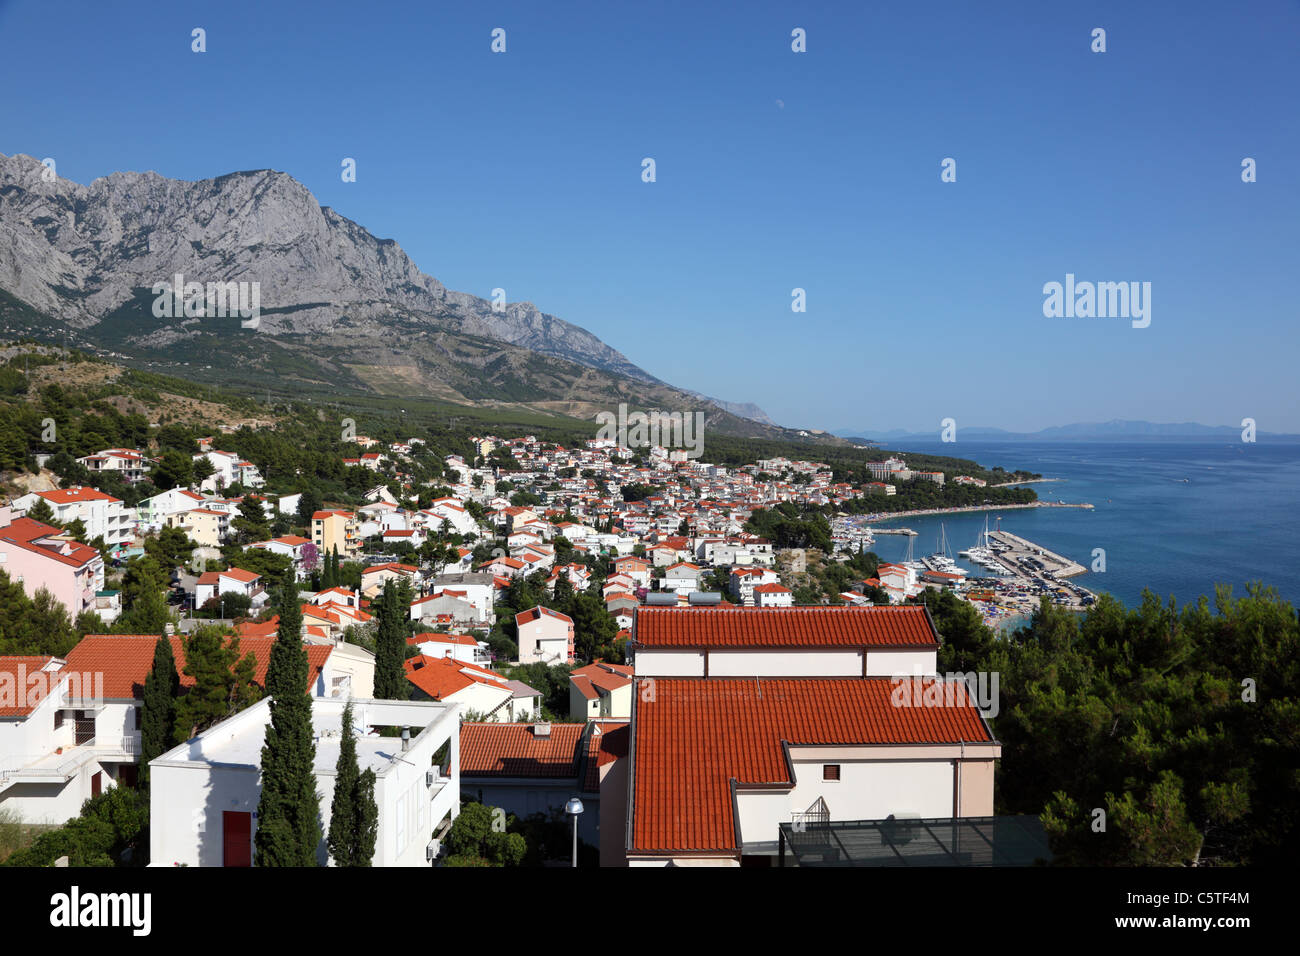 View of Croatian resort Baska Voda - Stock Image